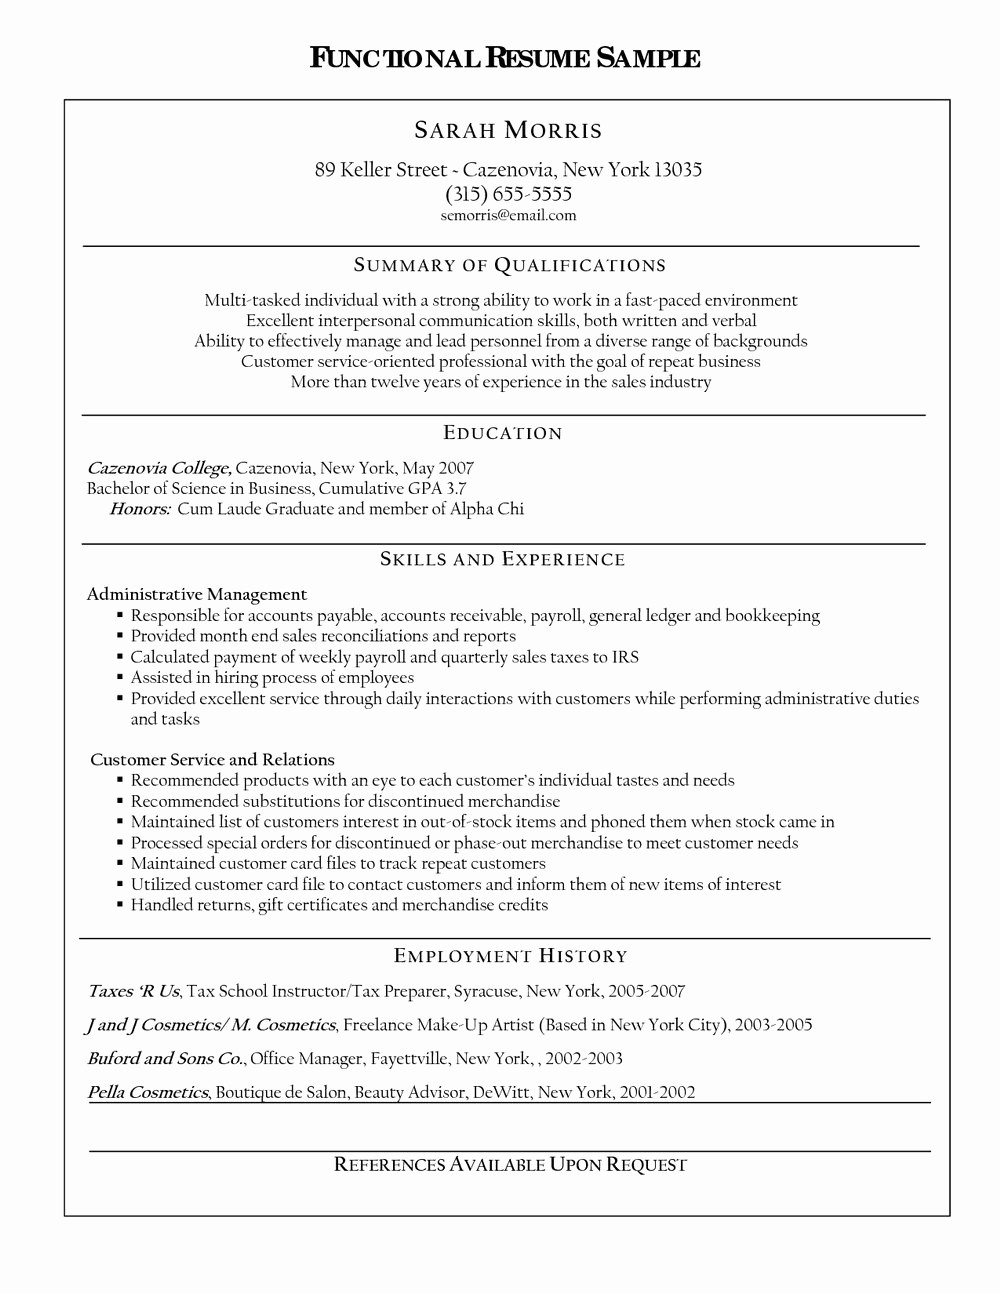 Functional Resume Templates Free Download Best Of Functional Resume Template Free Download